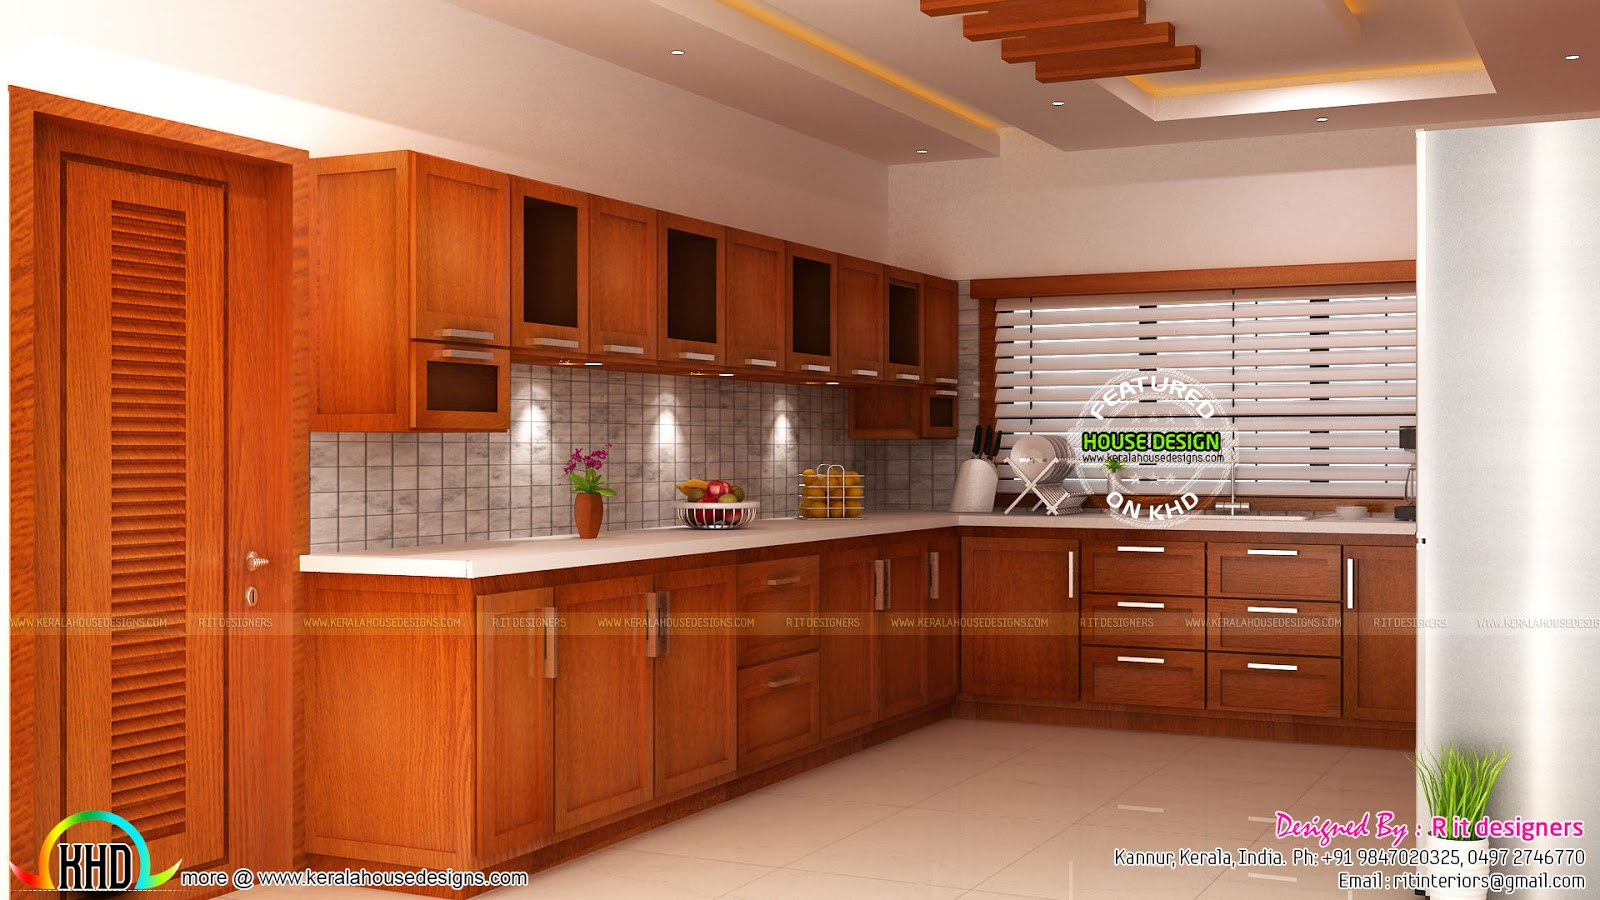 Modular kitchen living and bedroom interior kerala home for Kerala style kitchen photos